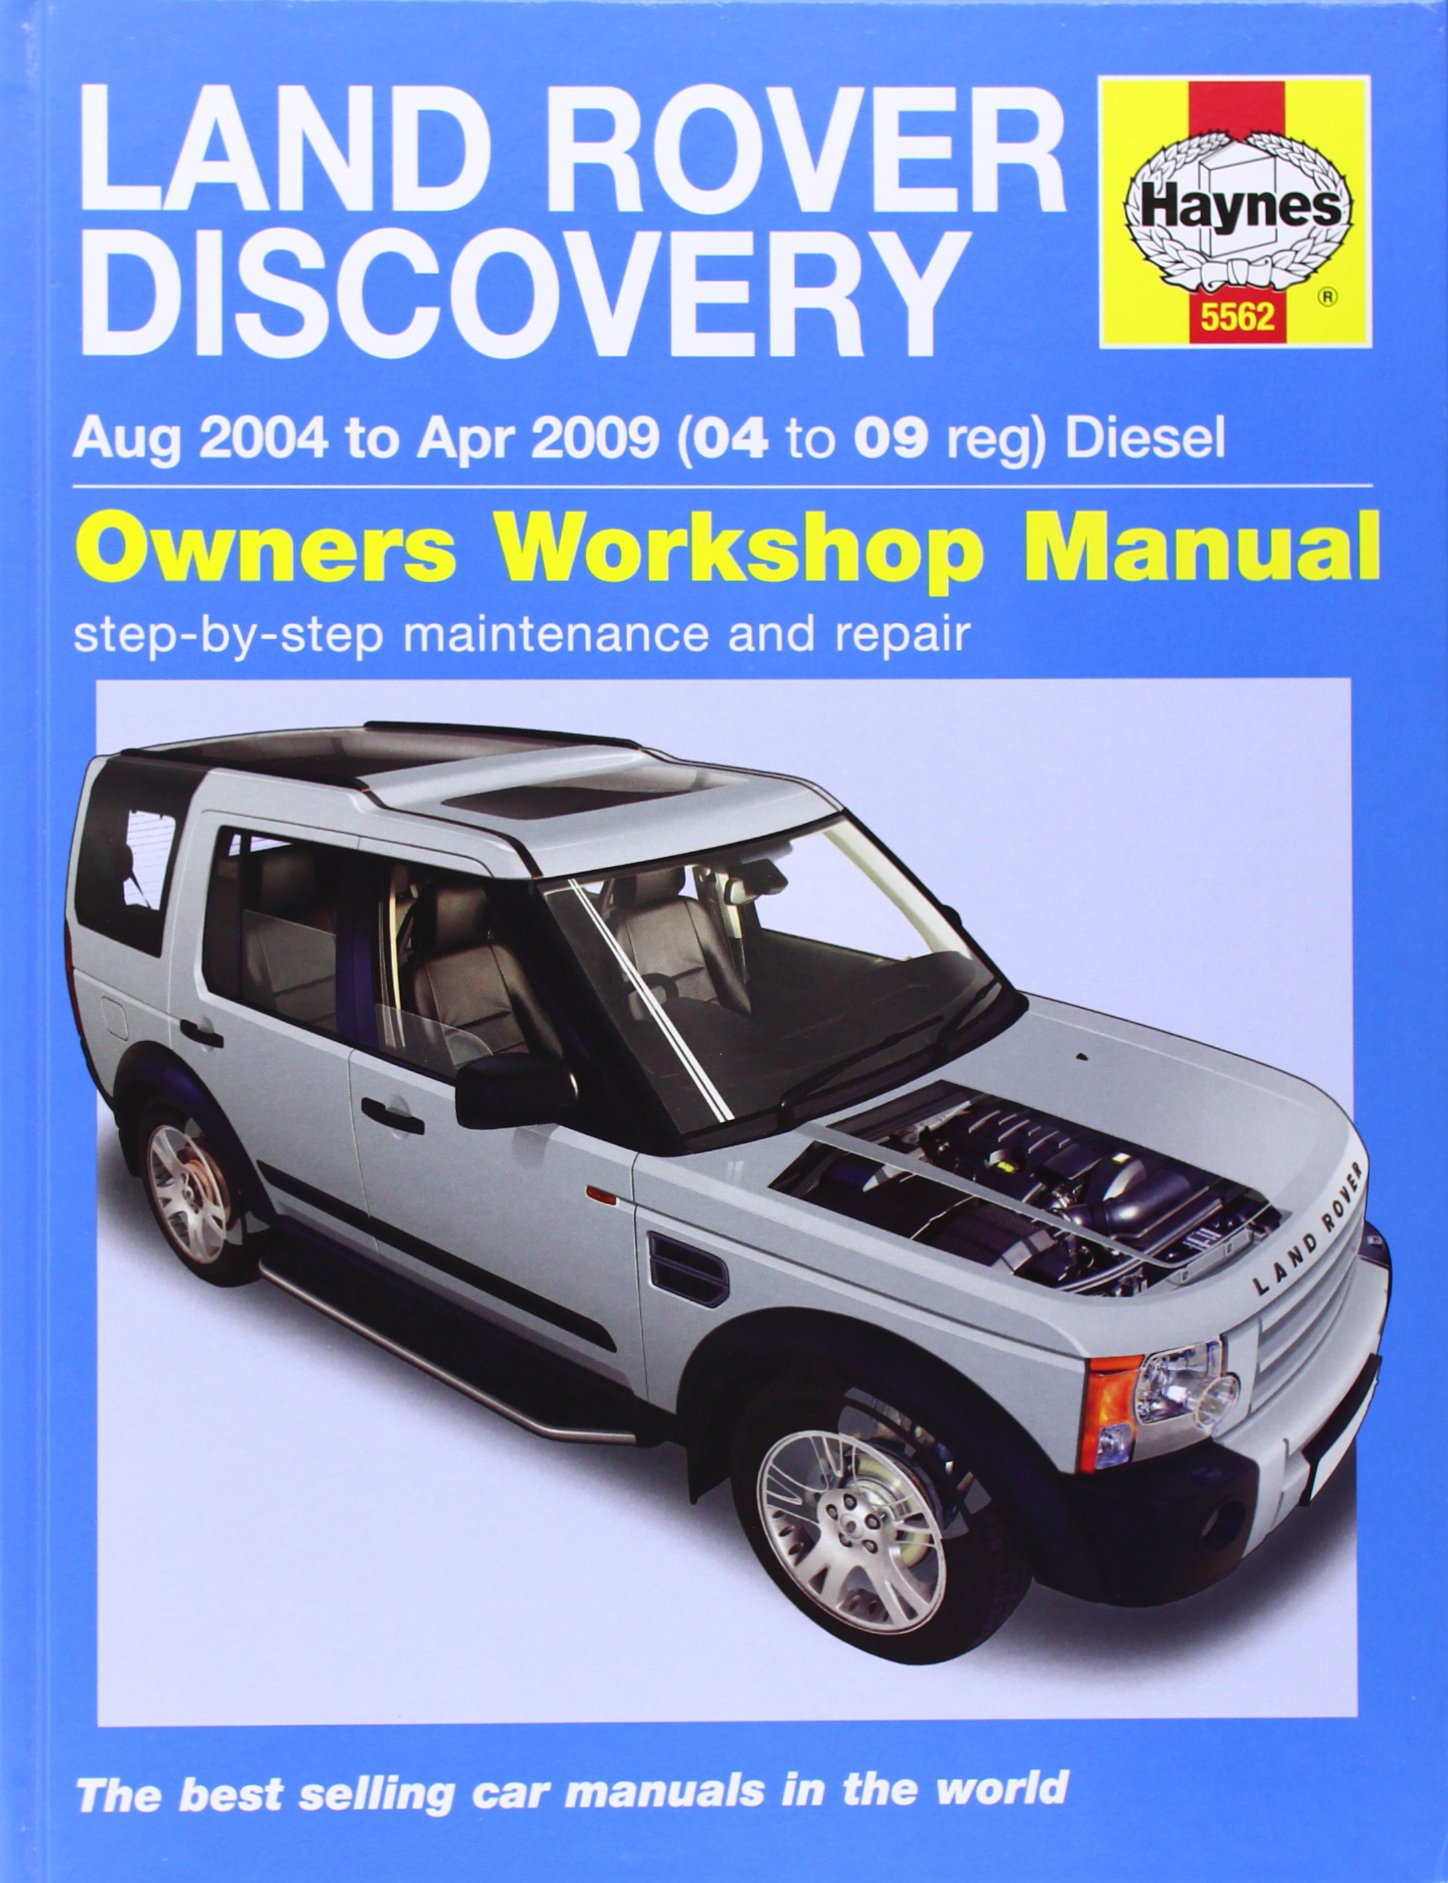 land rover discovery diesel service and repair manual 04 09 haynes rh amazon de Le Land Rover Discovery 1998 1998 land rover discovery repair manual pdf